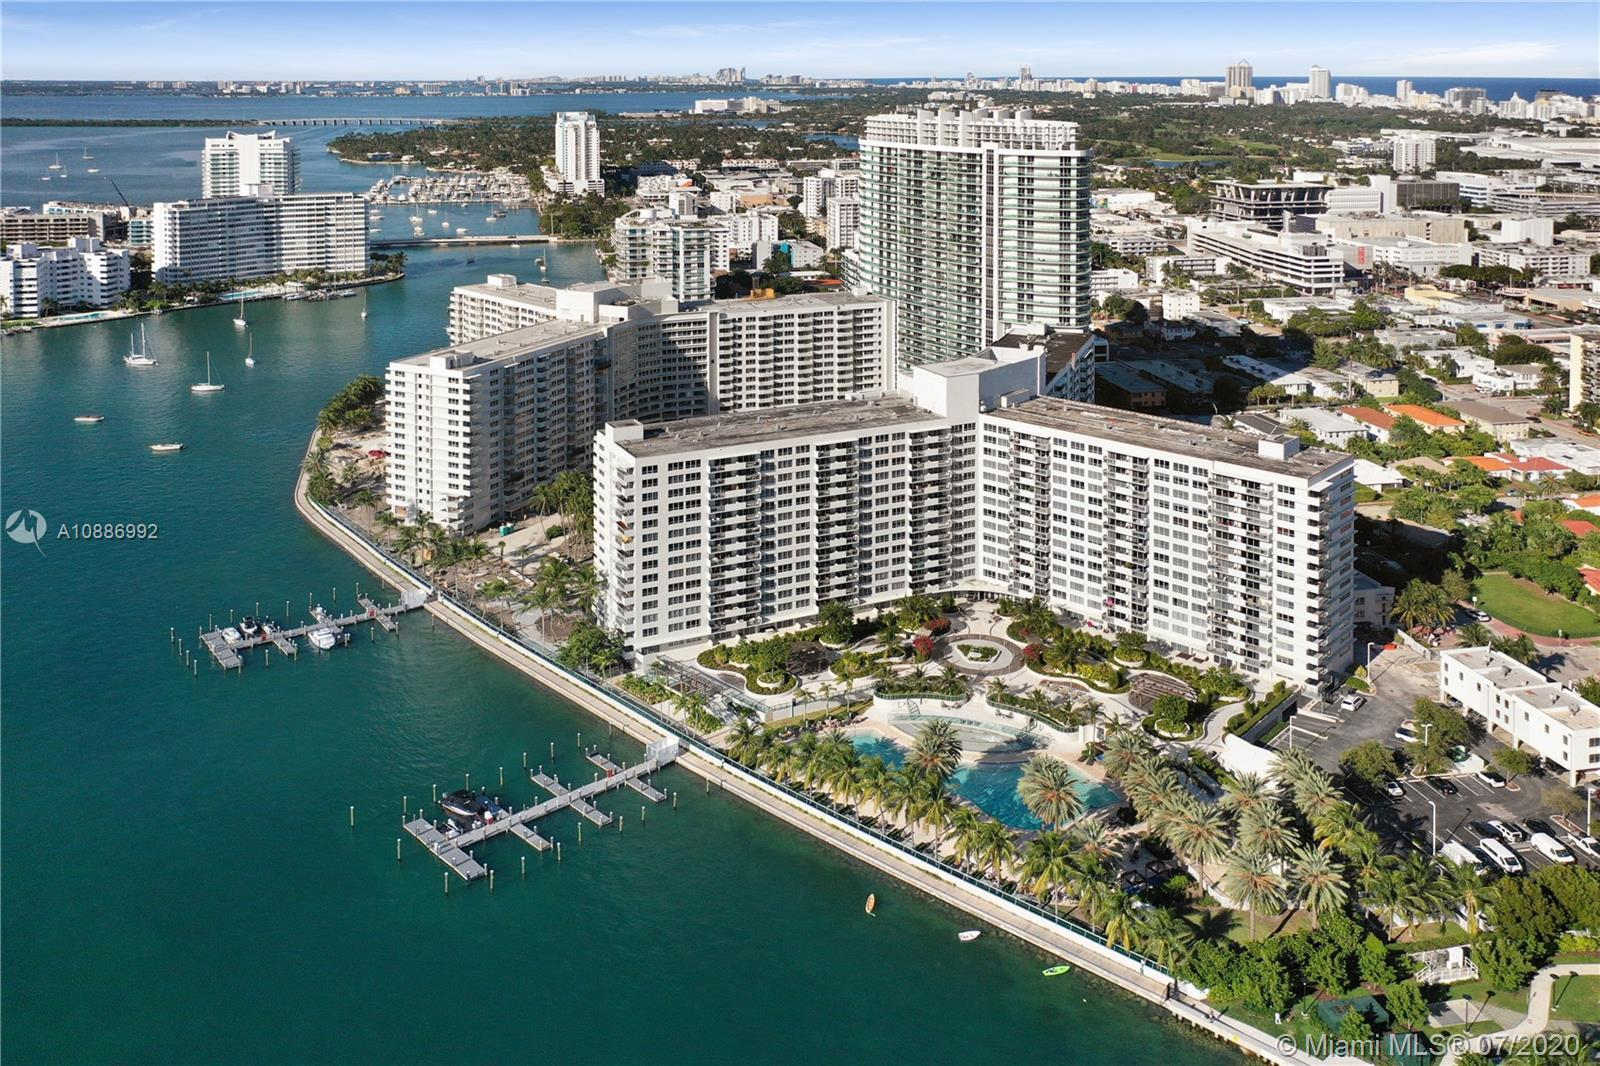 POSSIBLE SHORT SALE !!!!! The best complex in south beach, both for residents and tourists. 5 STAR